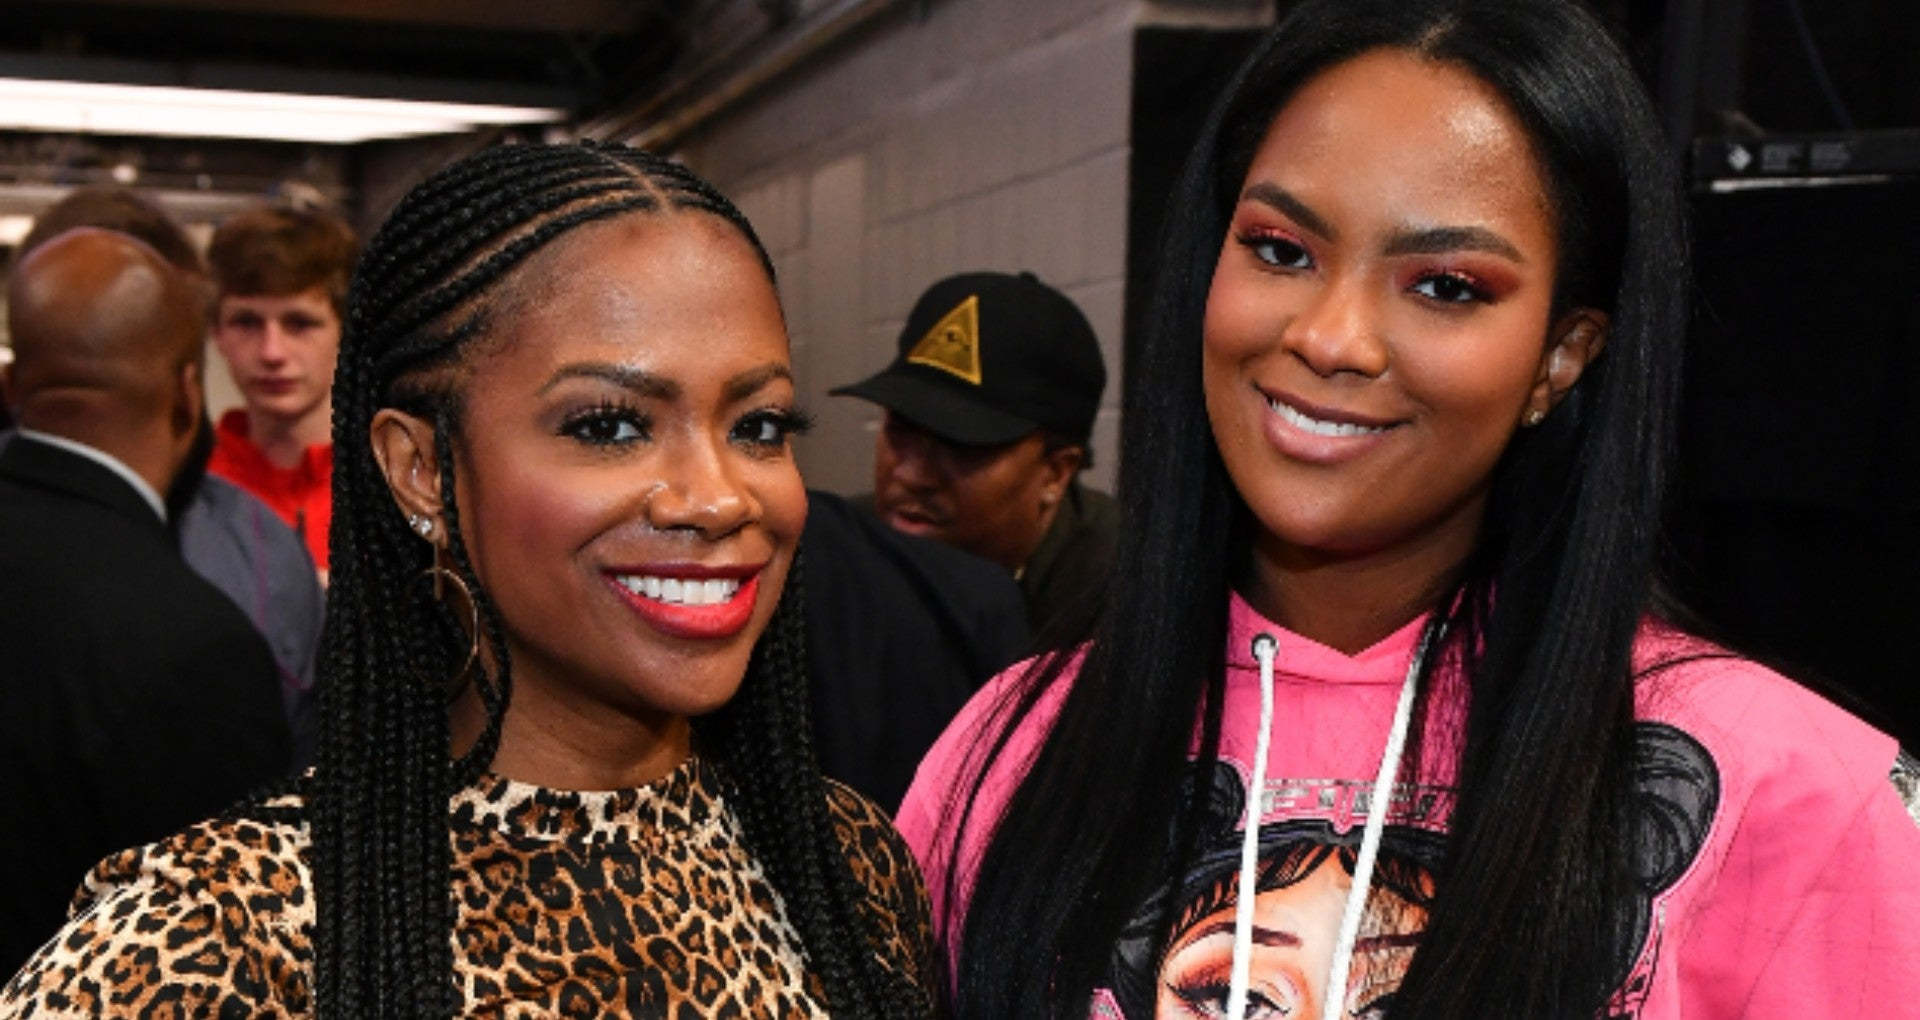 kandi-burruss-makes-fans-excited-with-this-speak-on-it-episode-featuring-kenya-moore